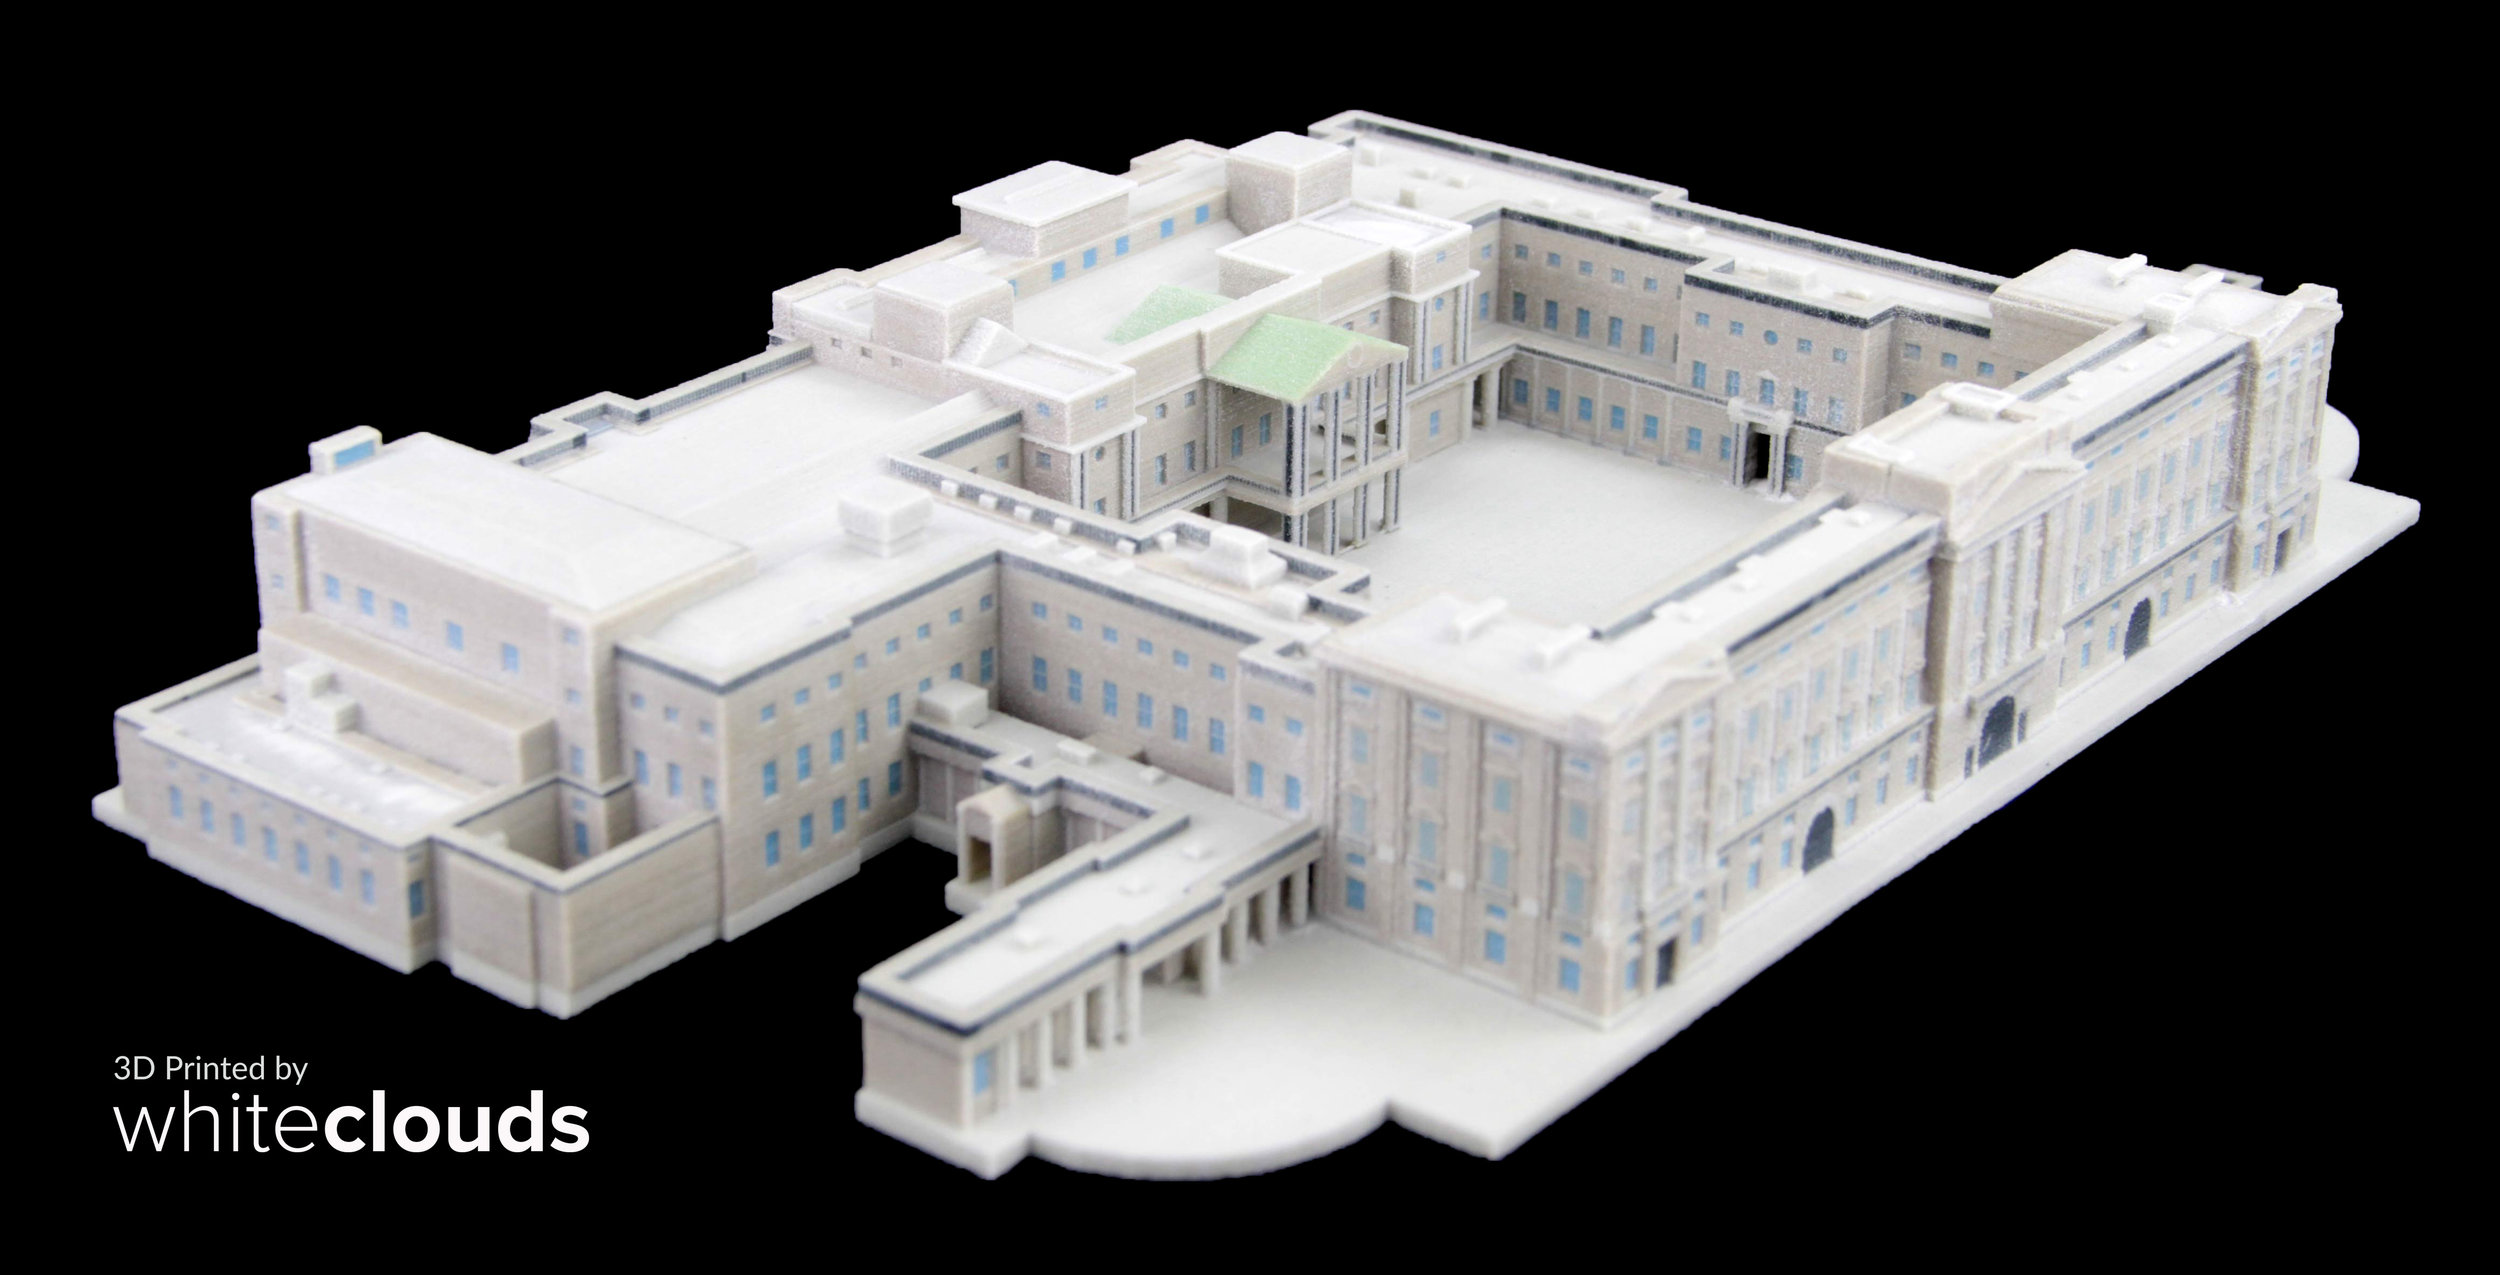 3D-Printed-WhiteClouds-Palace-Architectural-Buckingham-Palace-4.jpg